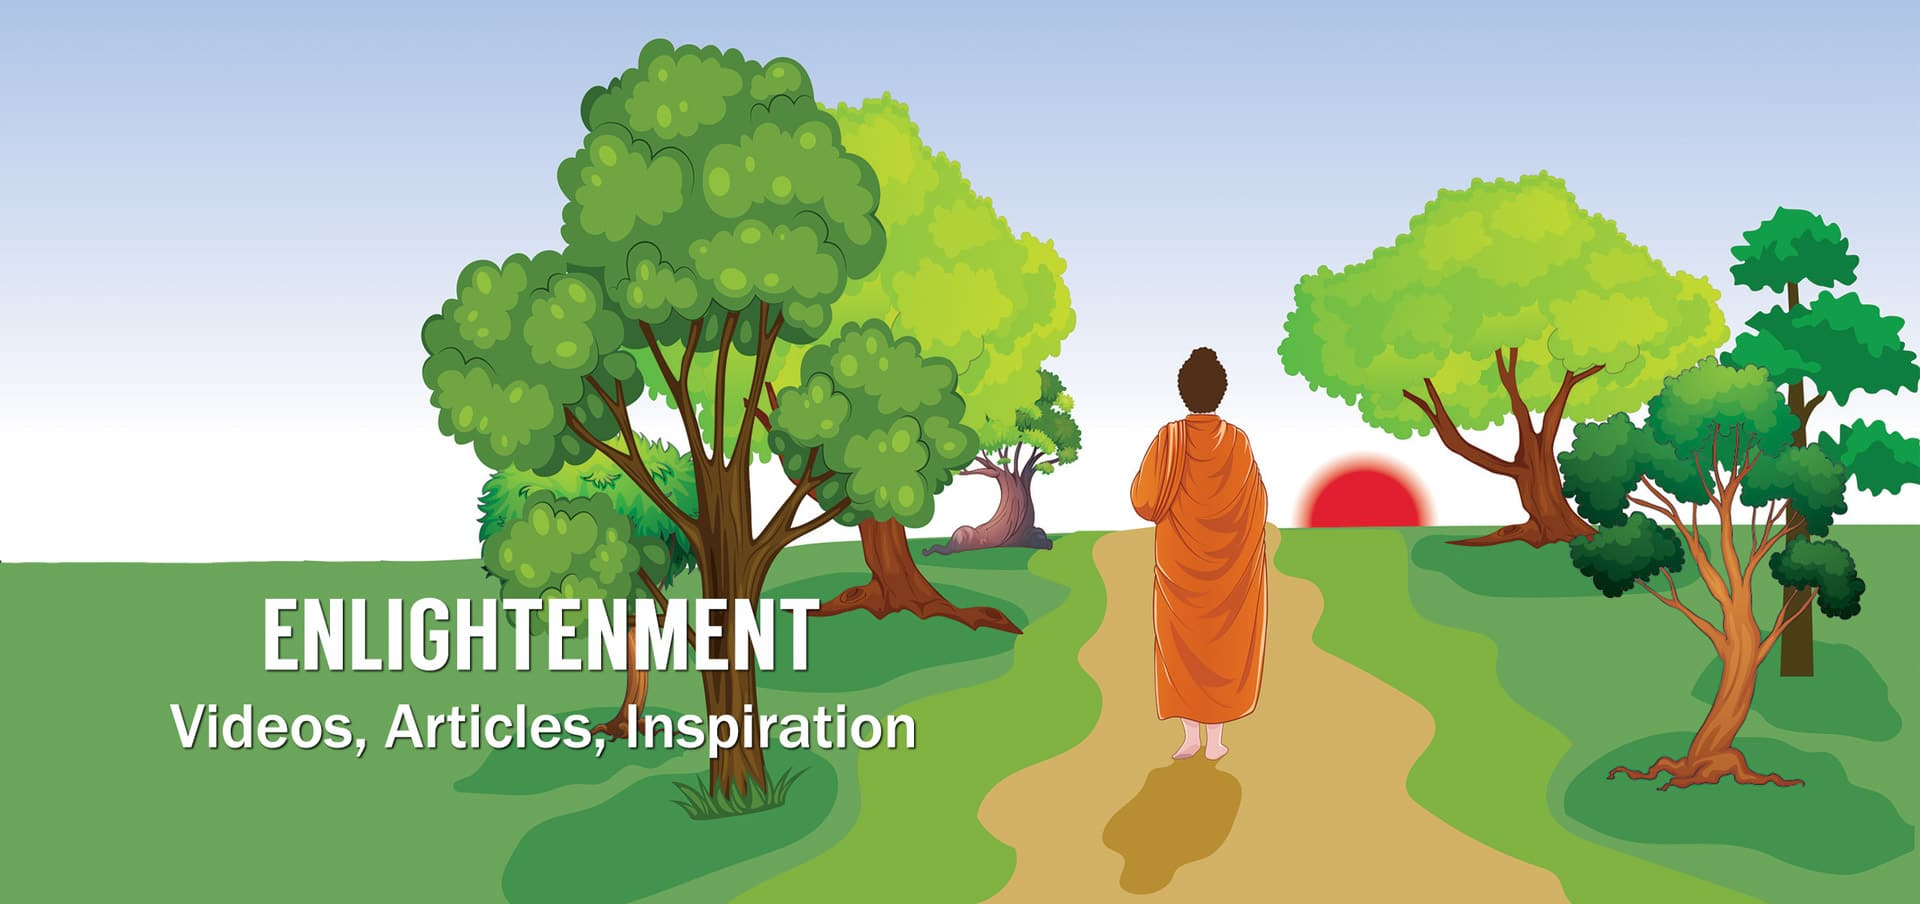 Path to Enlightenment - Videos, Articles, Inspiration